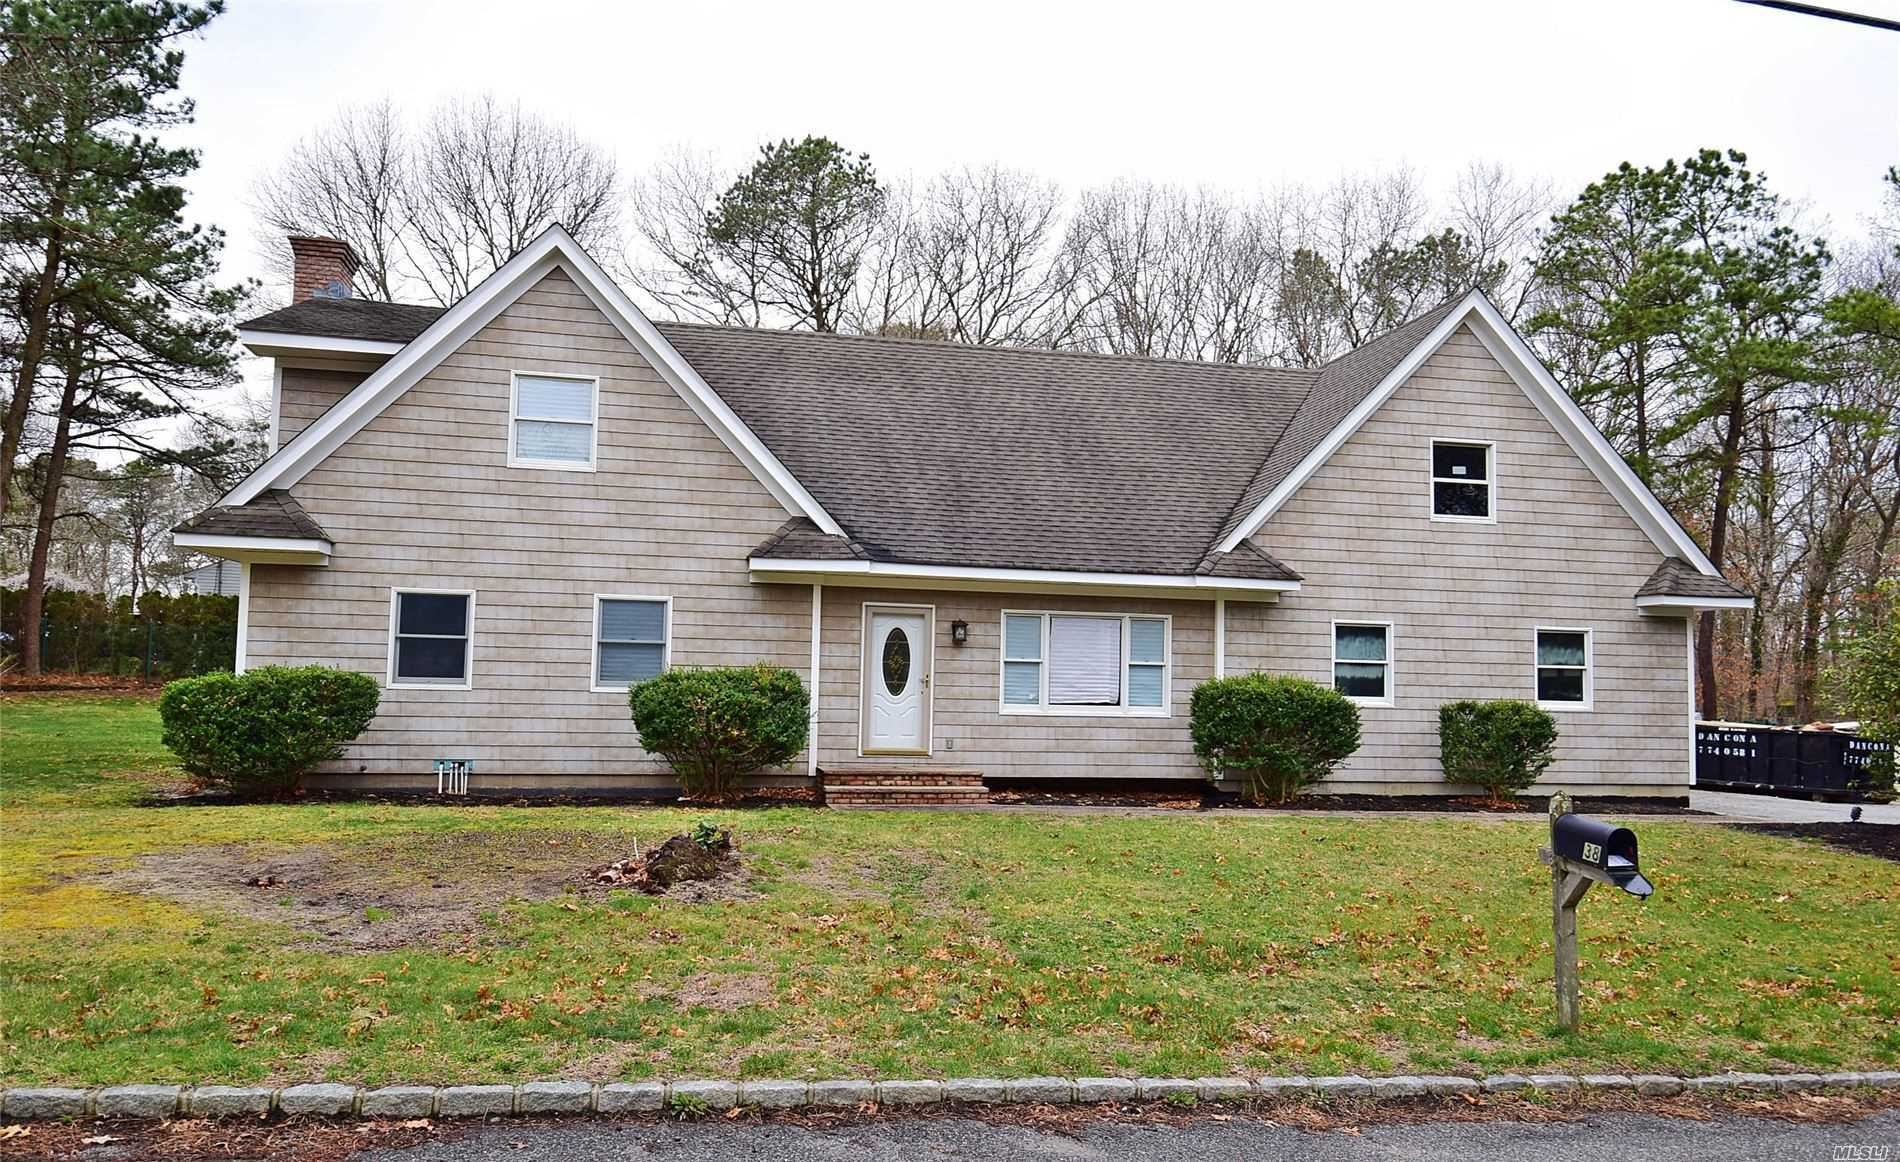 232 Silas Carter Road, Manorville, NY 11949 - MLS#: 3210807